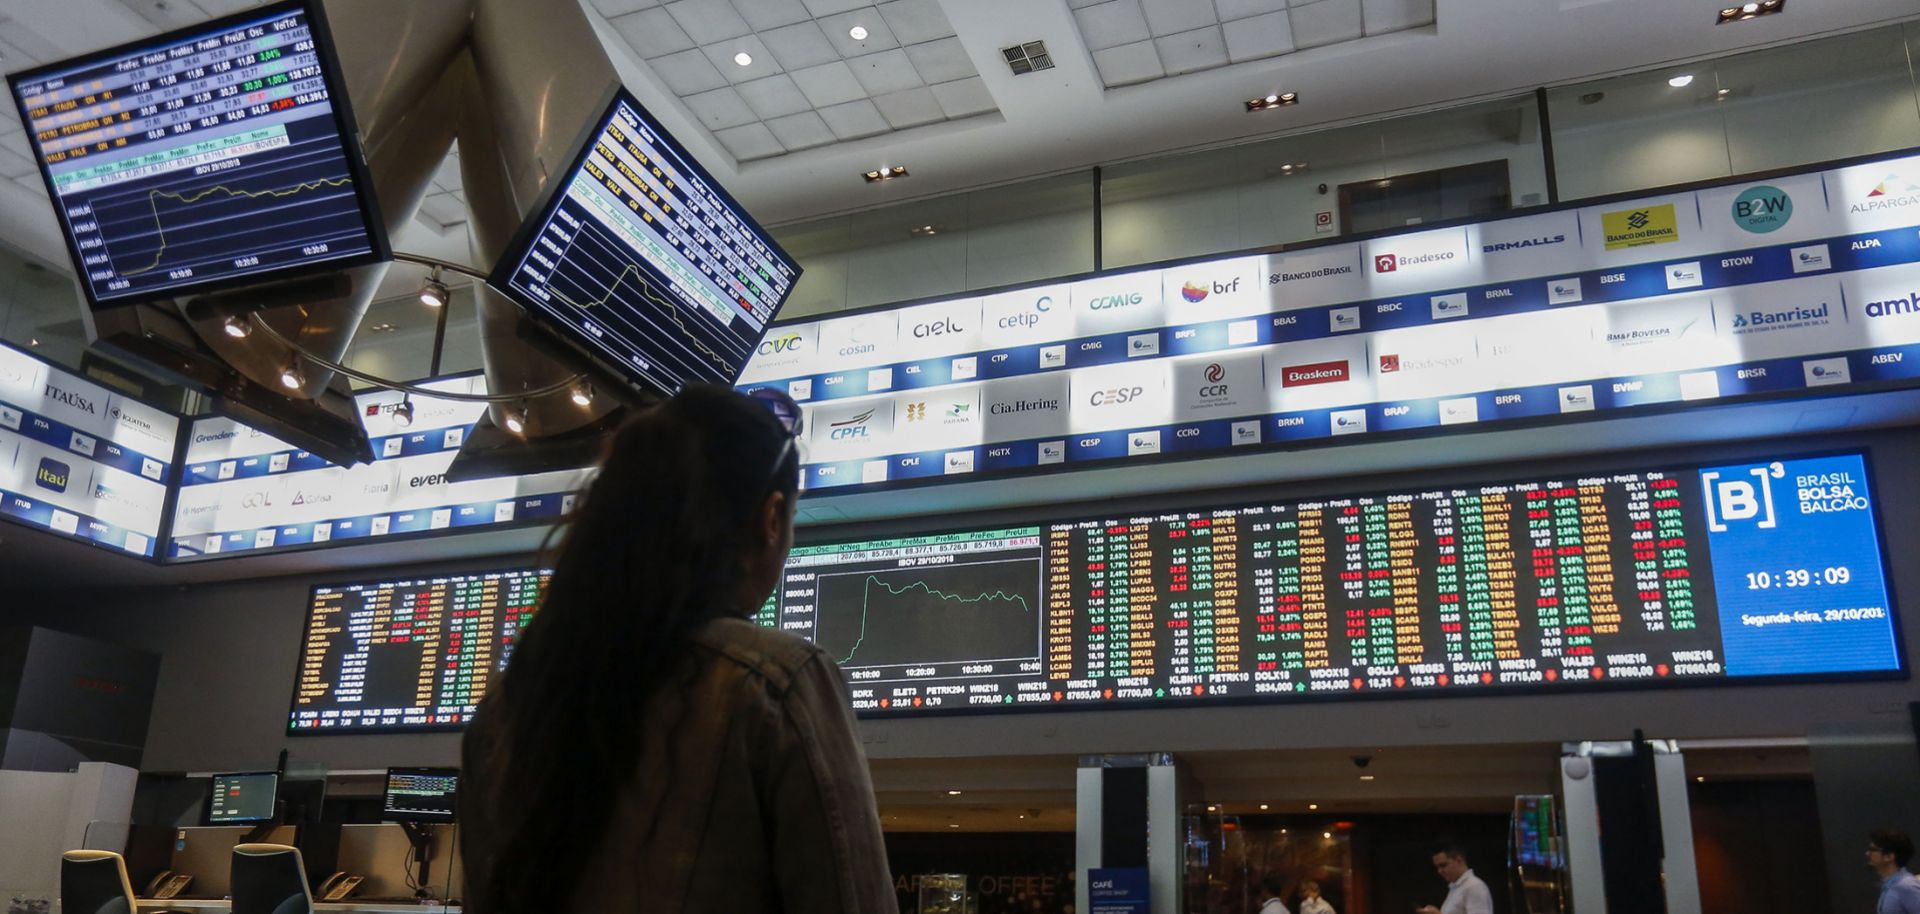 The headquarters of Sao Paulo's Stocks Exchange (Bovespa) in downtown Sao Paulo, Brazil, on Oct. 29, 2018.